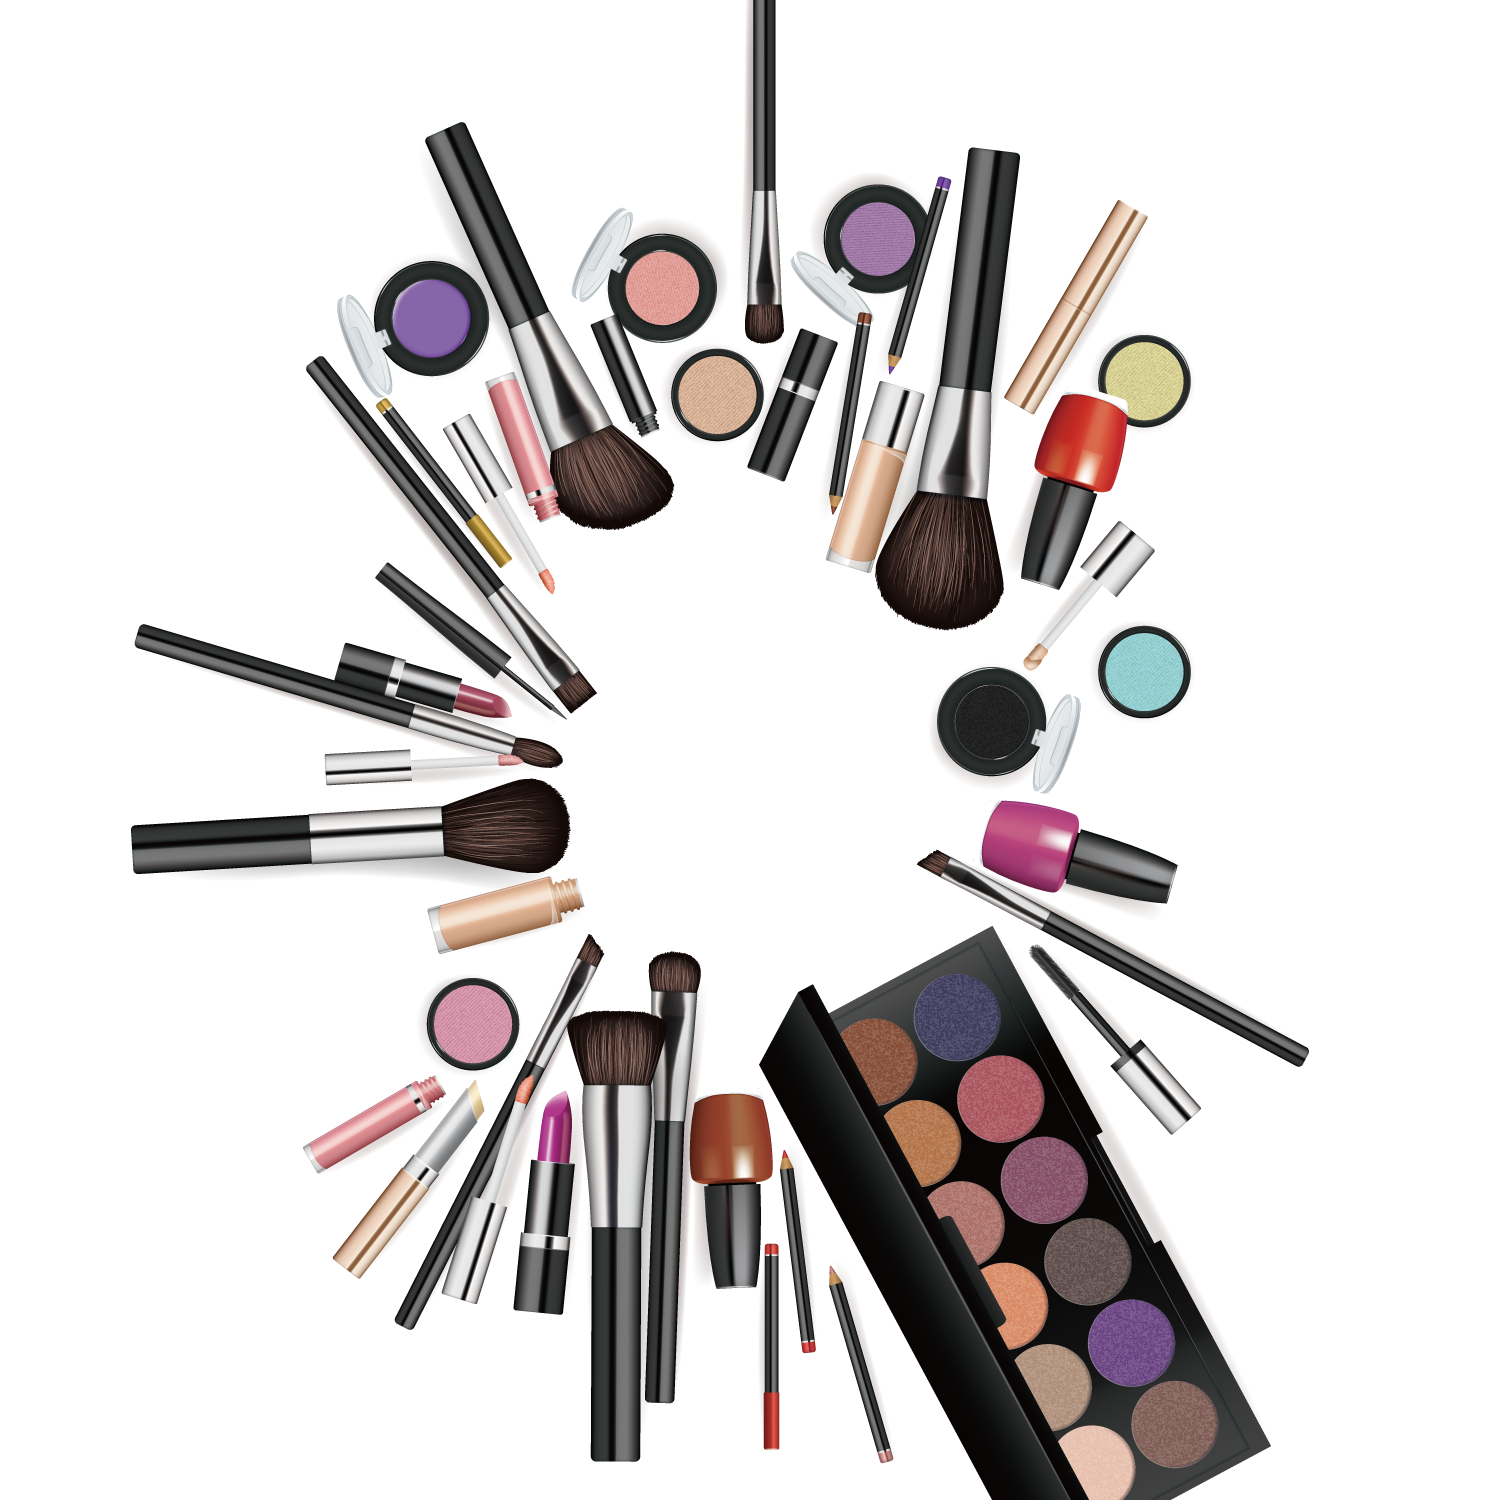 Makeup background png. Cosmetics brush make up